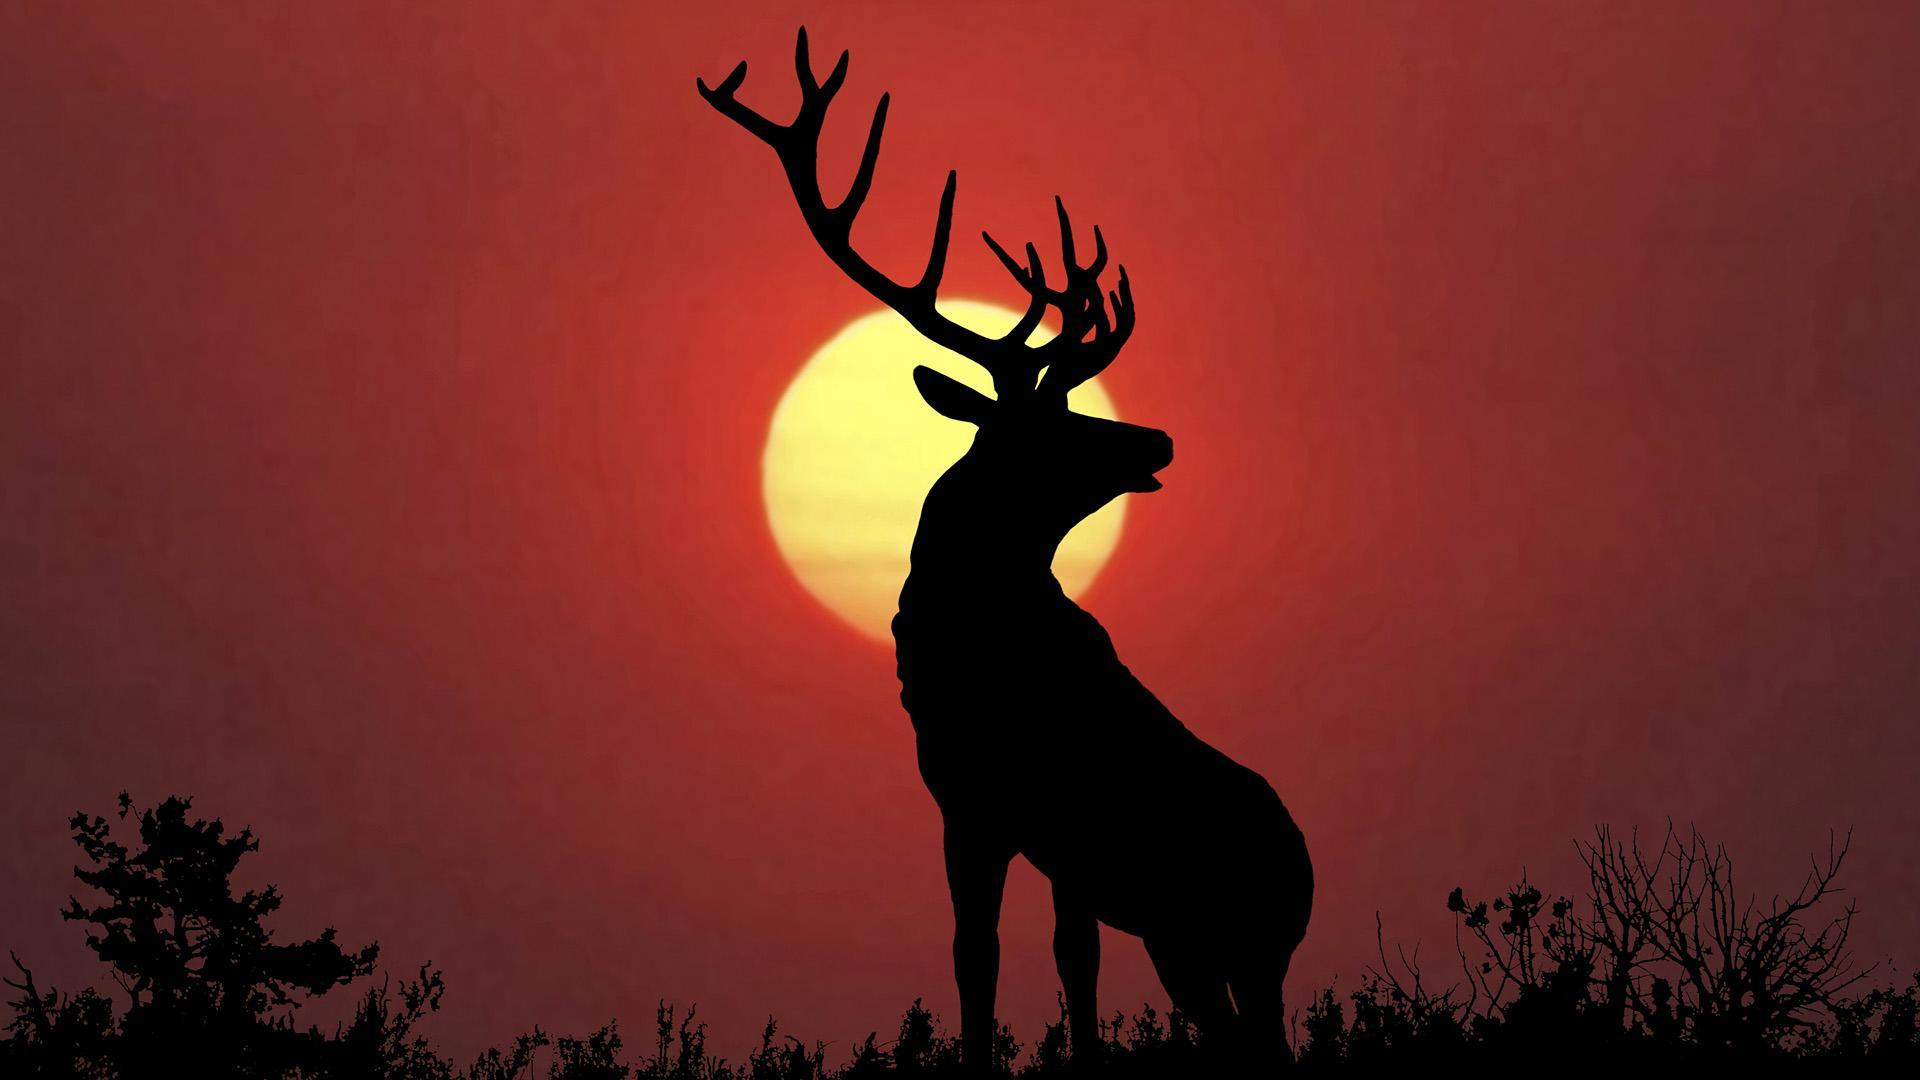 Rusa Wallpaper For Android - APK Download